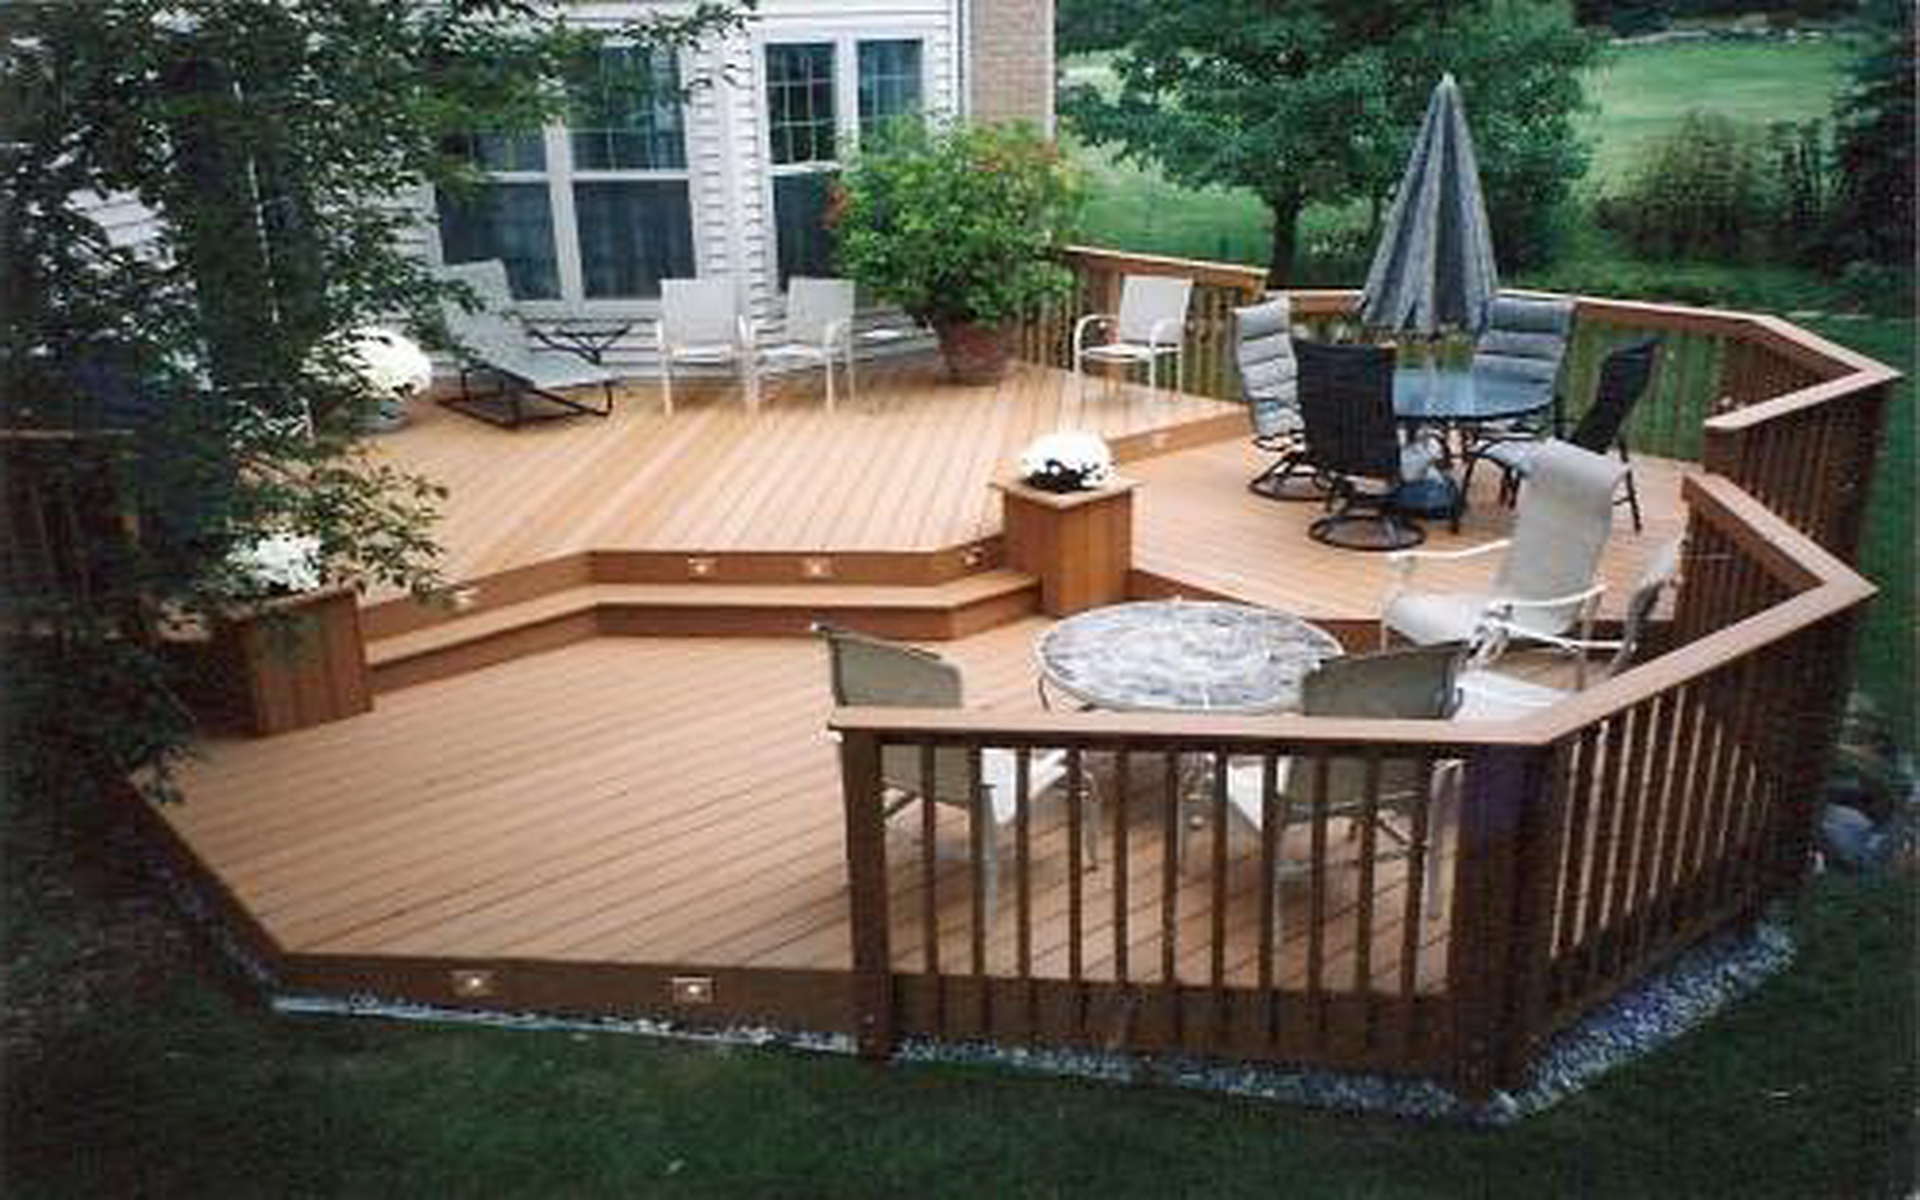 28 truly awesome wooden deck designs for your home Deck design ideas